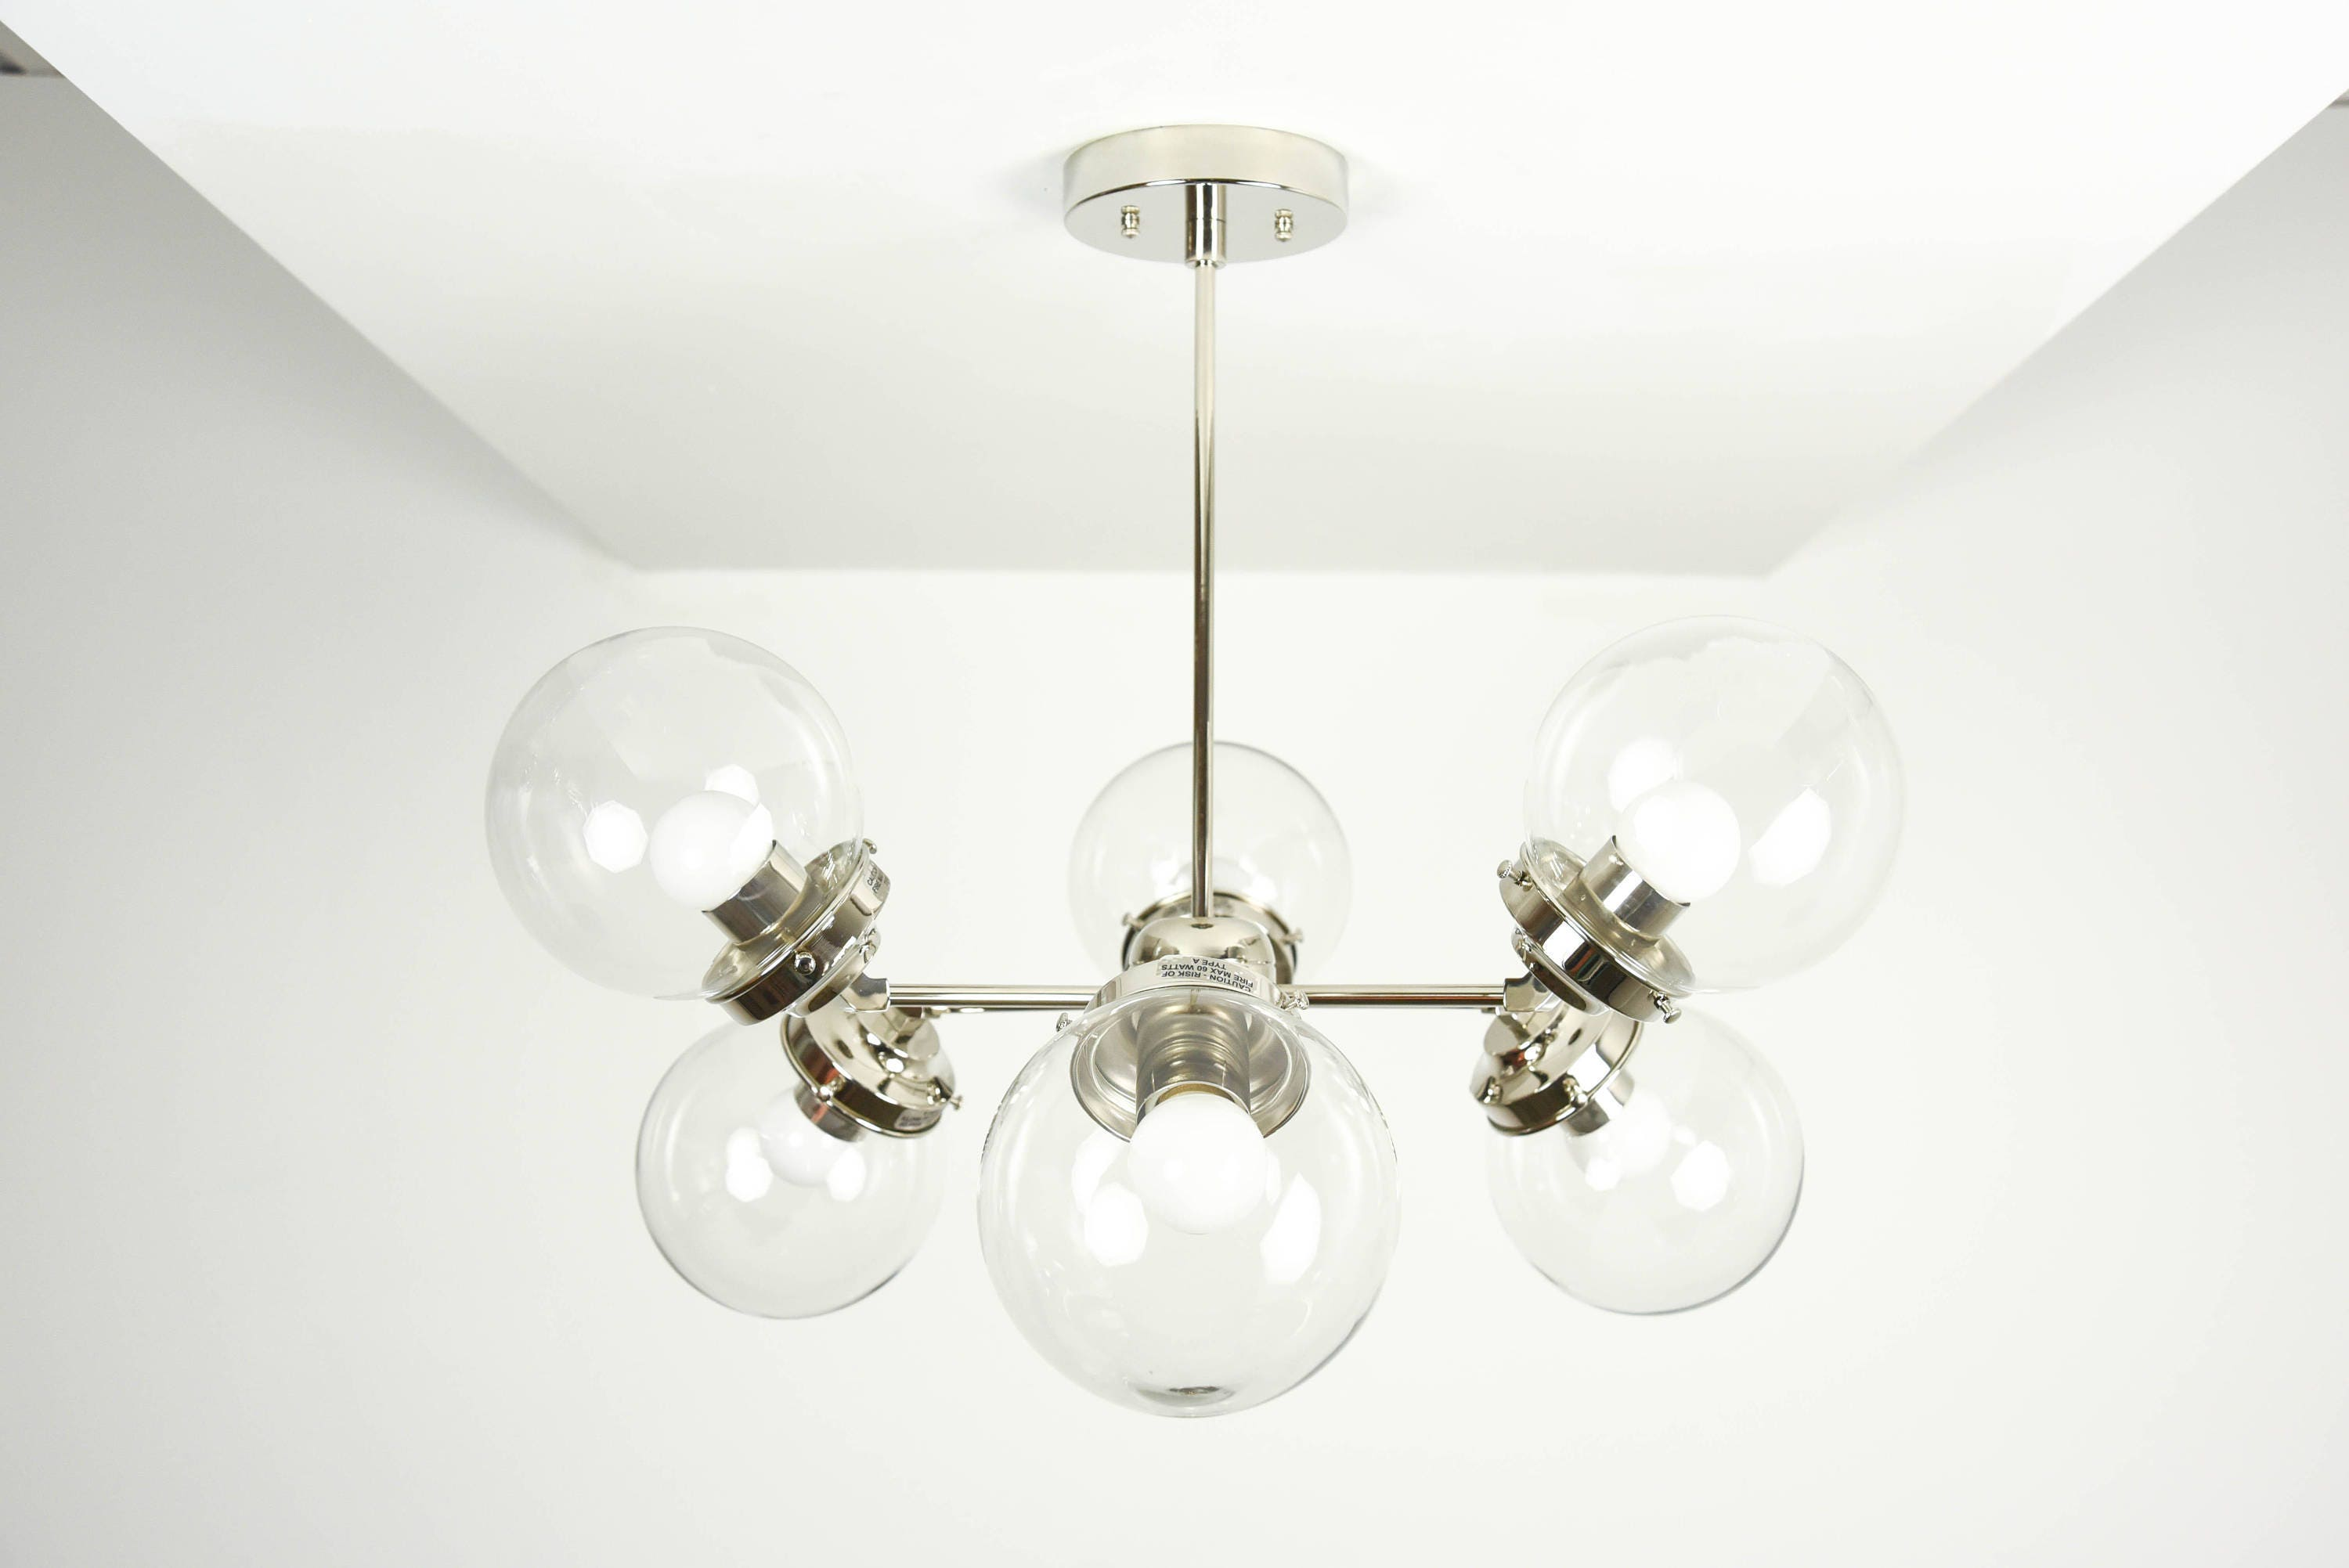 Modern bubble chandelier polished nickel 6 arm light clear globe modern bubble chandelier polished nickel 6 arm light clear globe pinwheel sputnik mid century industrial hanging light ul listed arubaitofo Choice Image